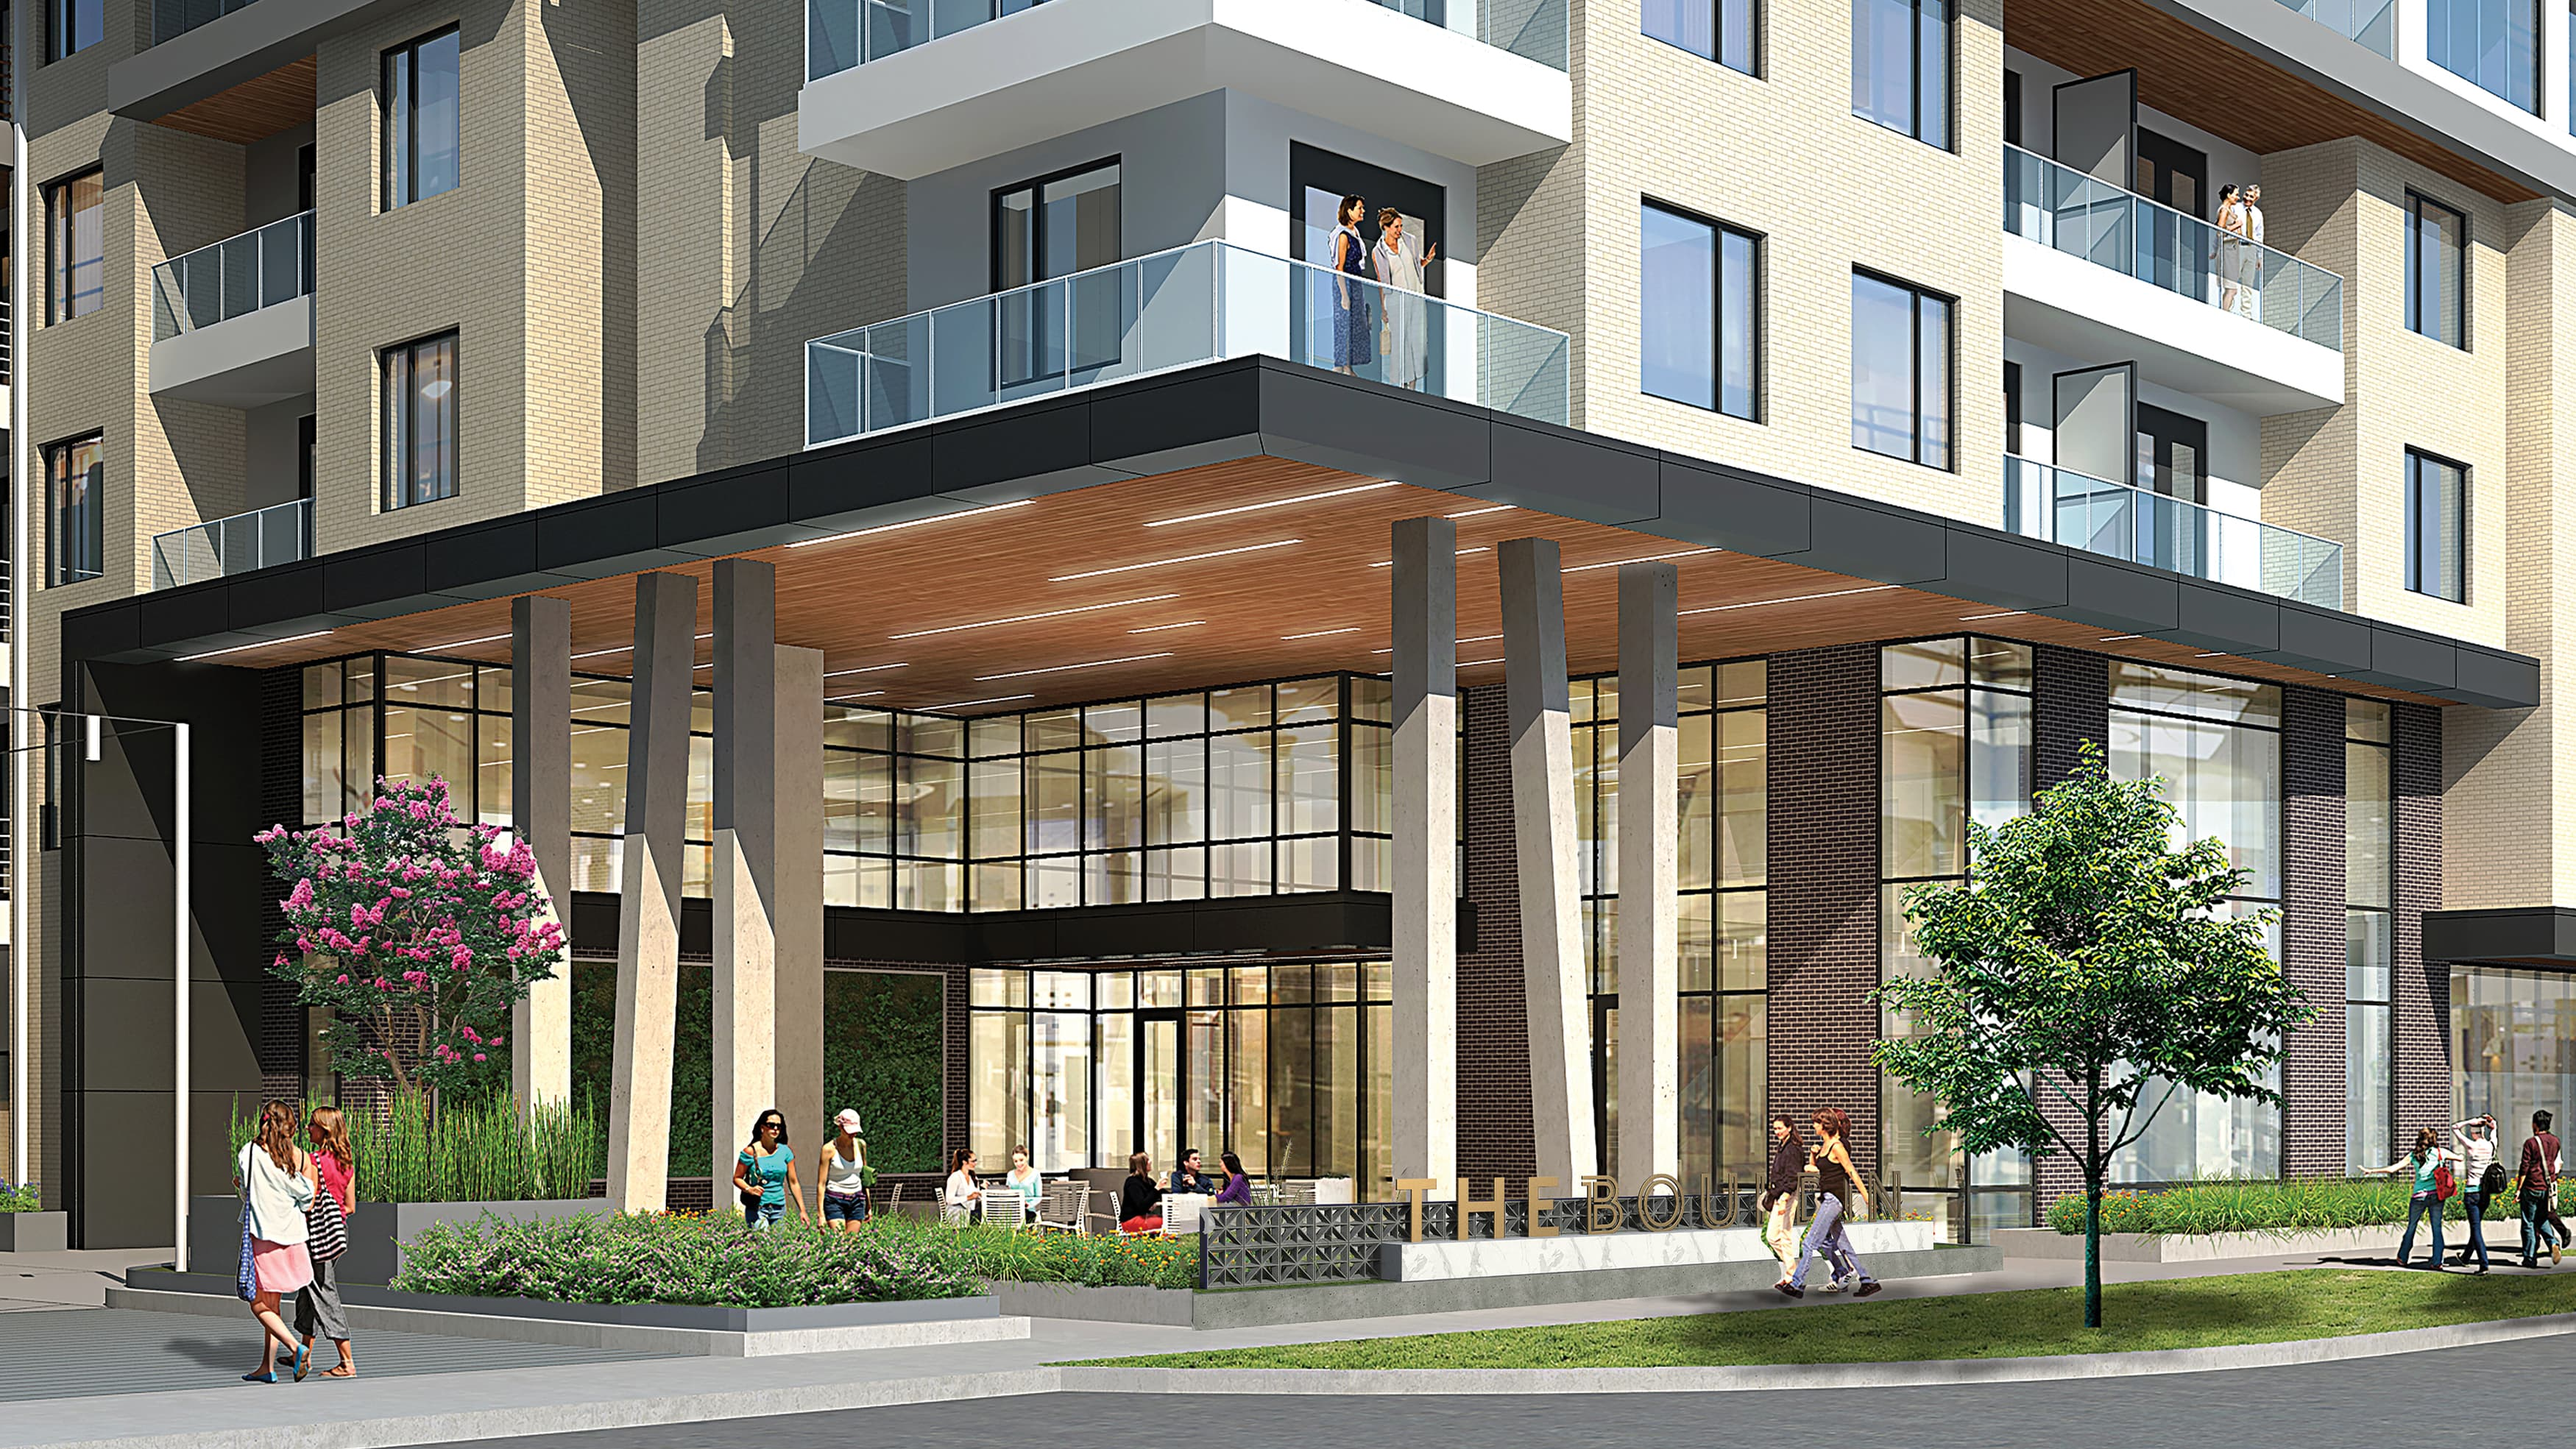 Architect's rendering of The Bouldin, a mixed-use residential and retail project.